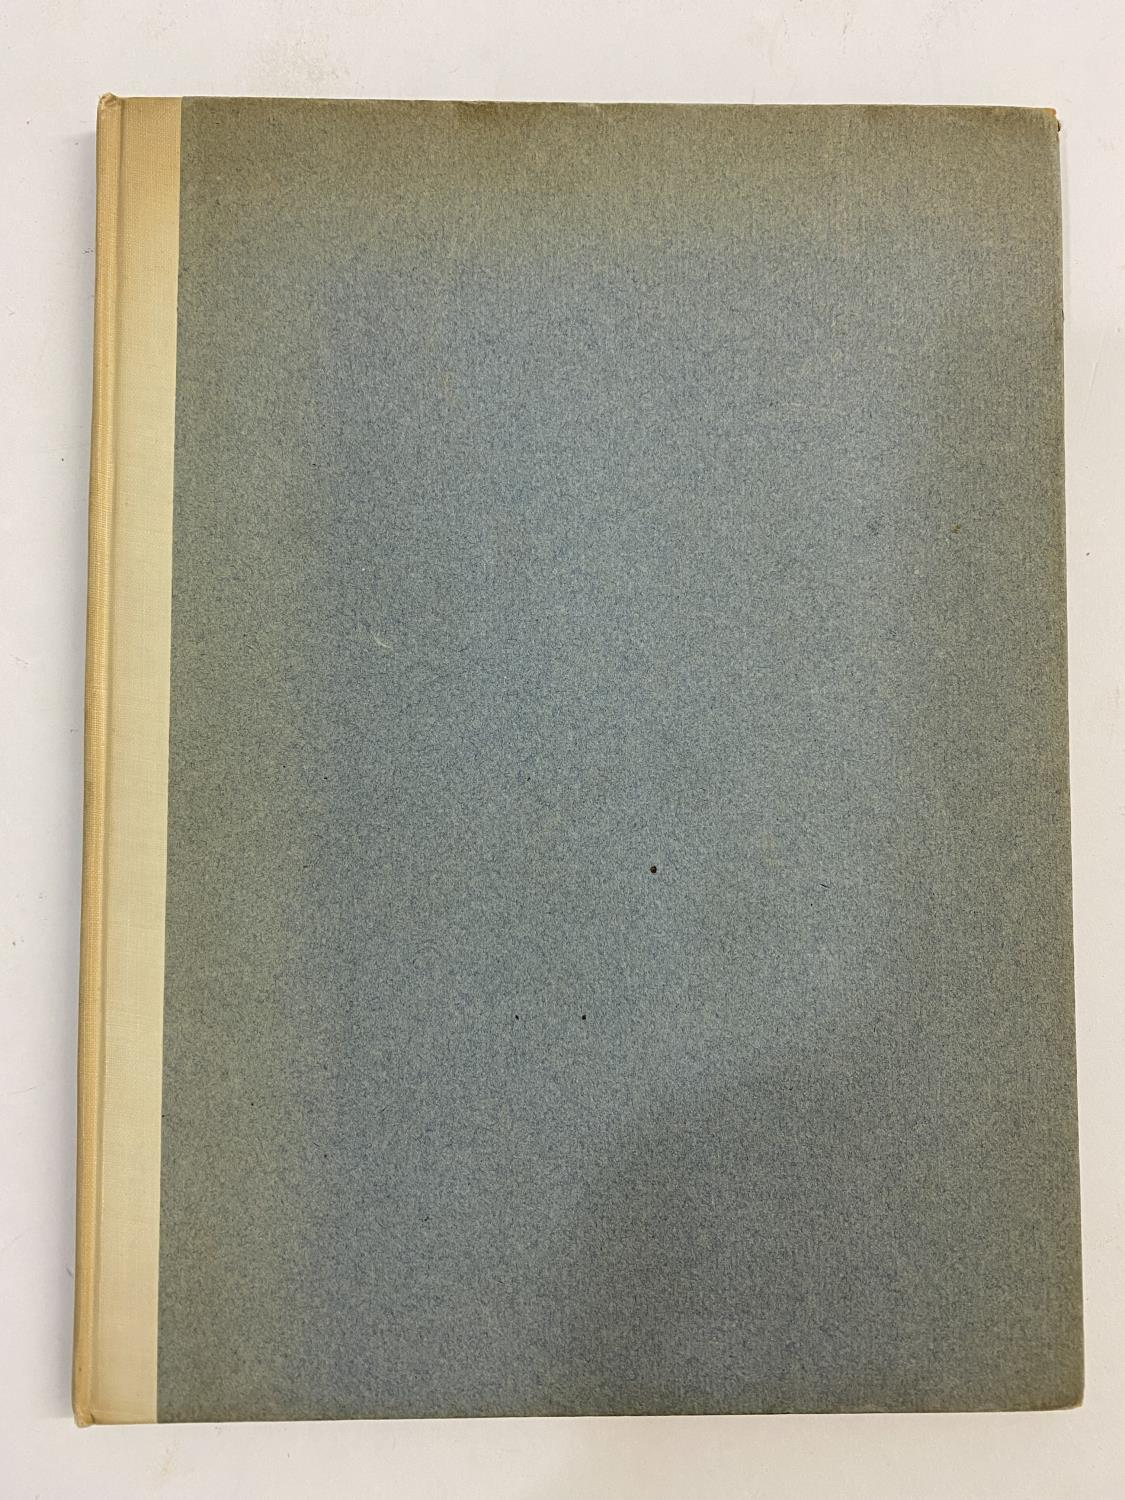 Sassoon, Siegfried. Sonnets, one of 50 copies, original cloth backed boards uncut, 4to, [No - Image 2 of 7